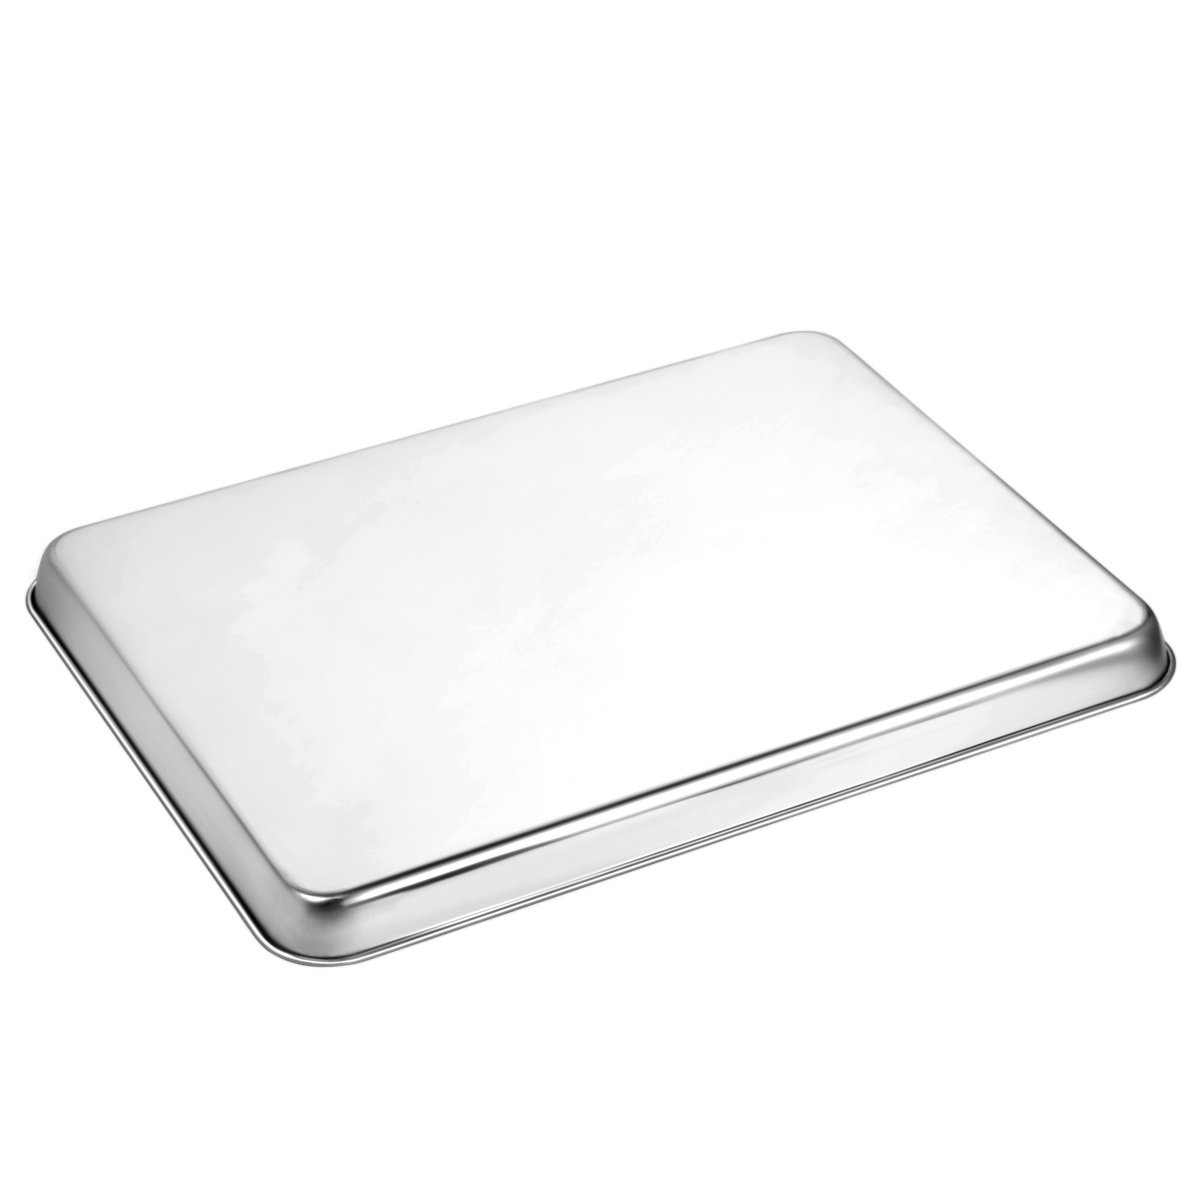 Baking Sheets Set of 3, HKJ Chef Baking Pans 3 Pieces & Stainless Steel Cookie Sheets & Toaster Oven Tray Pans, Non Toxic & Healthy, Mirror & Easy Clean by HKJ Chef (Image #3)